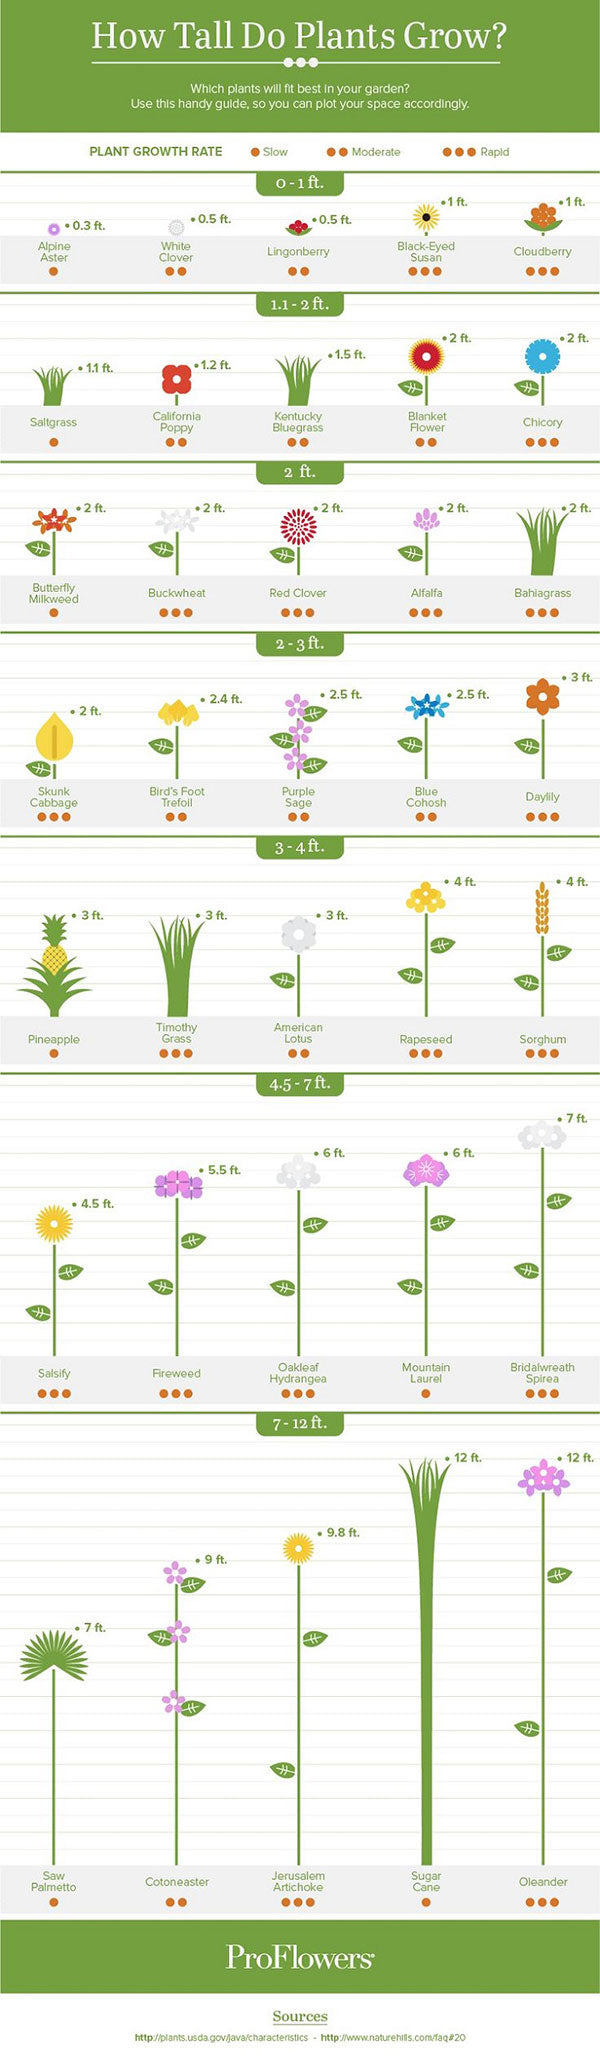 plant-growth-guide